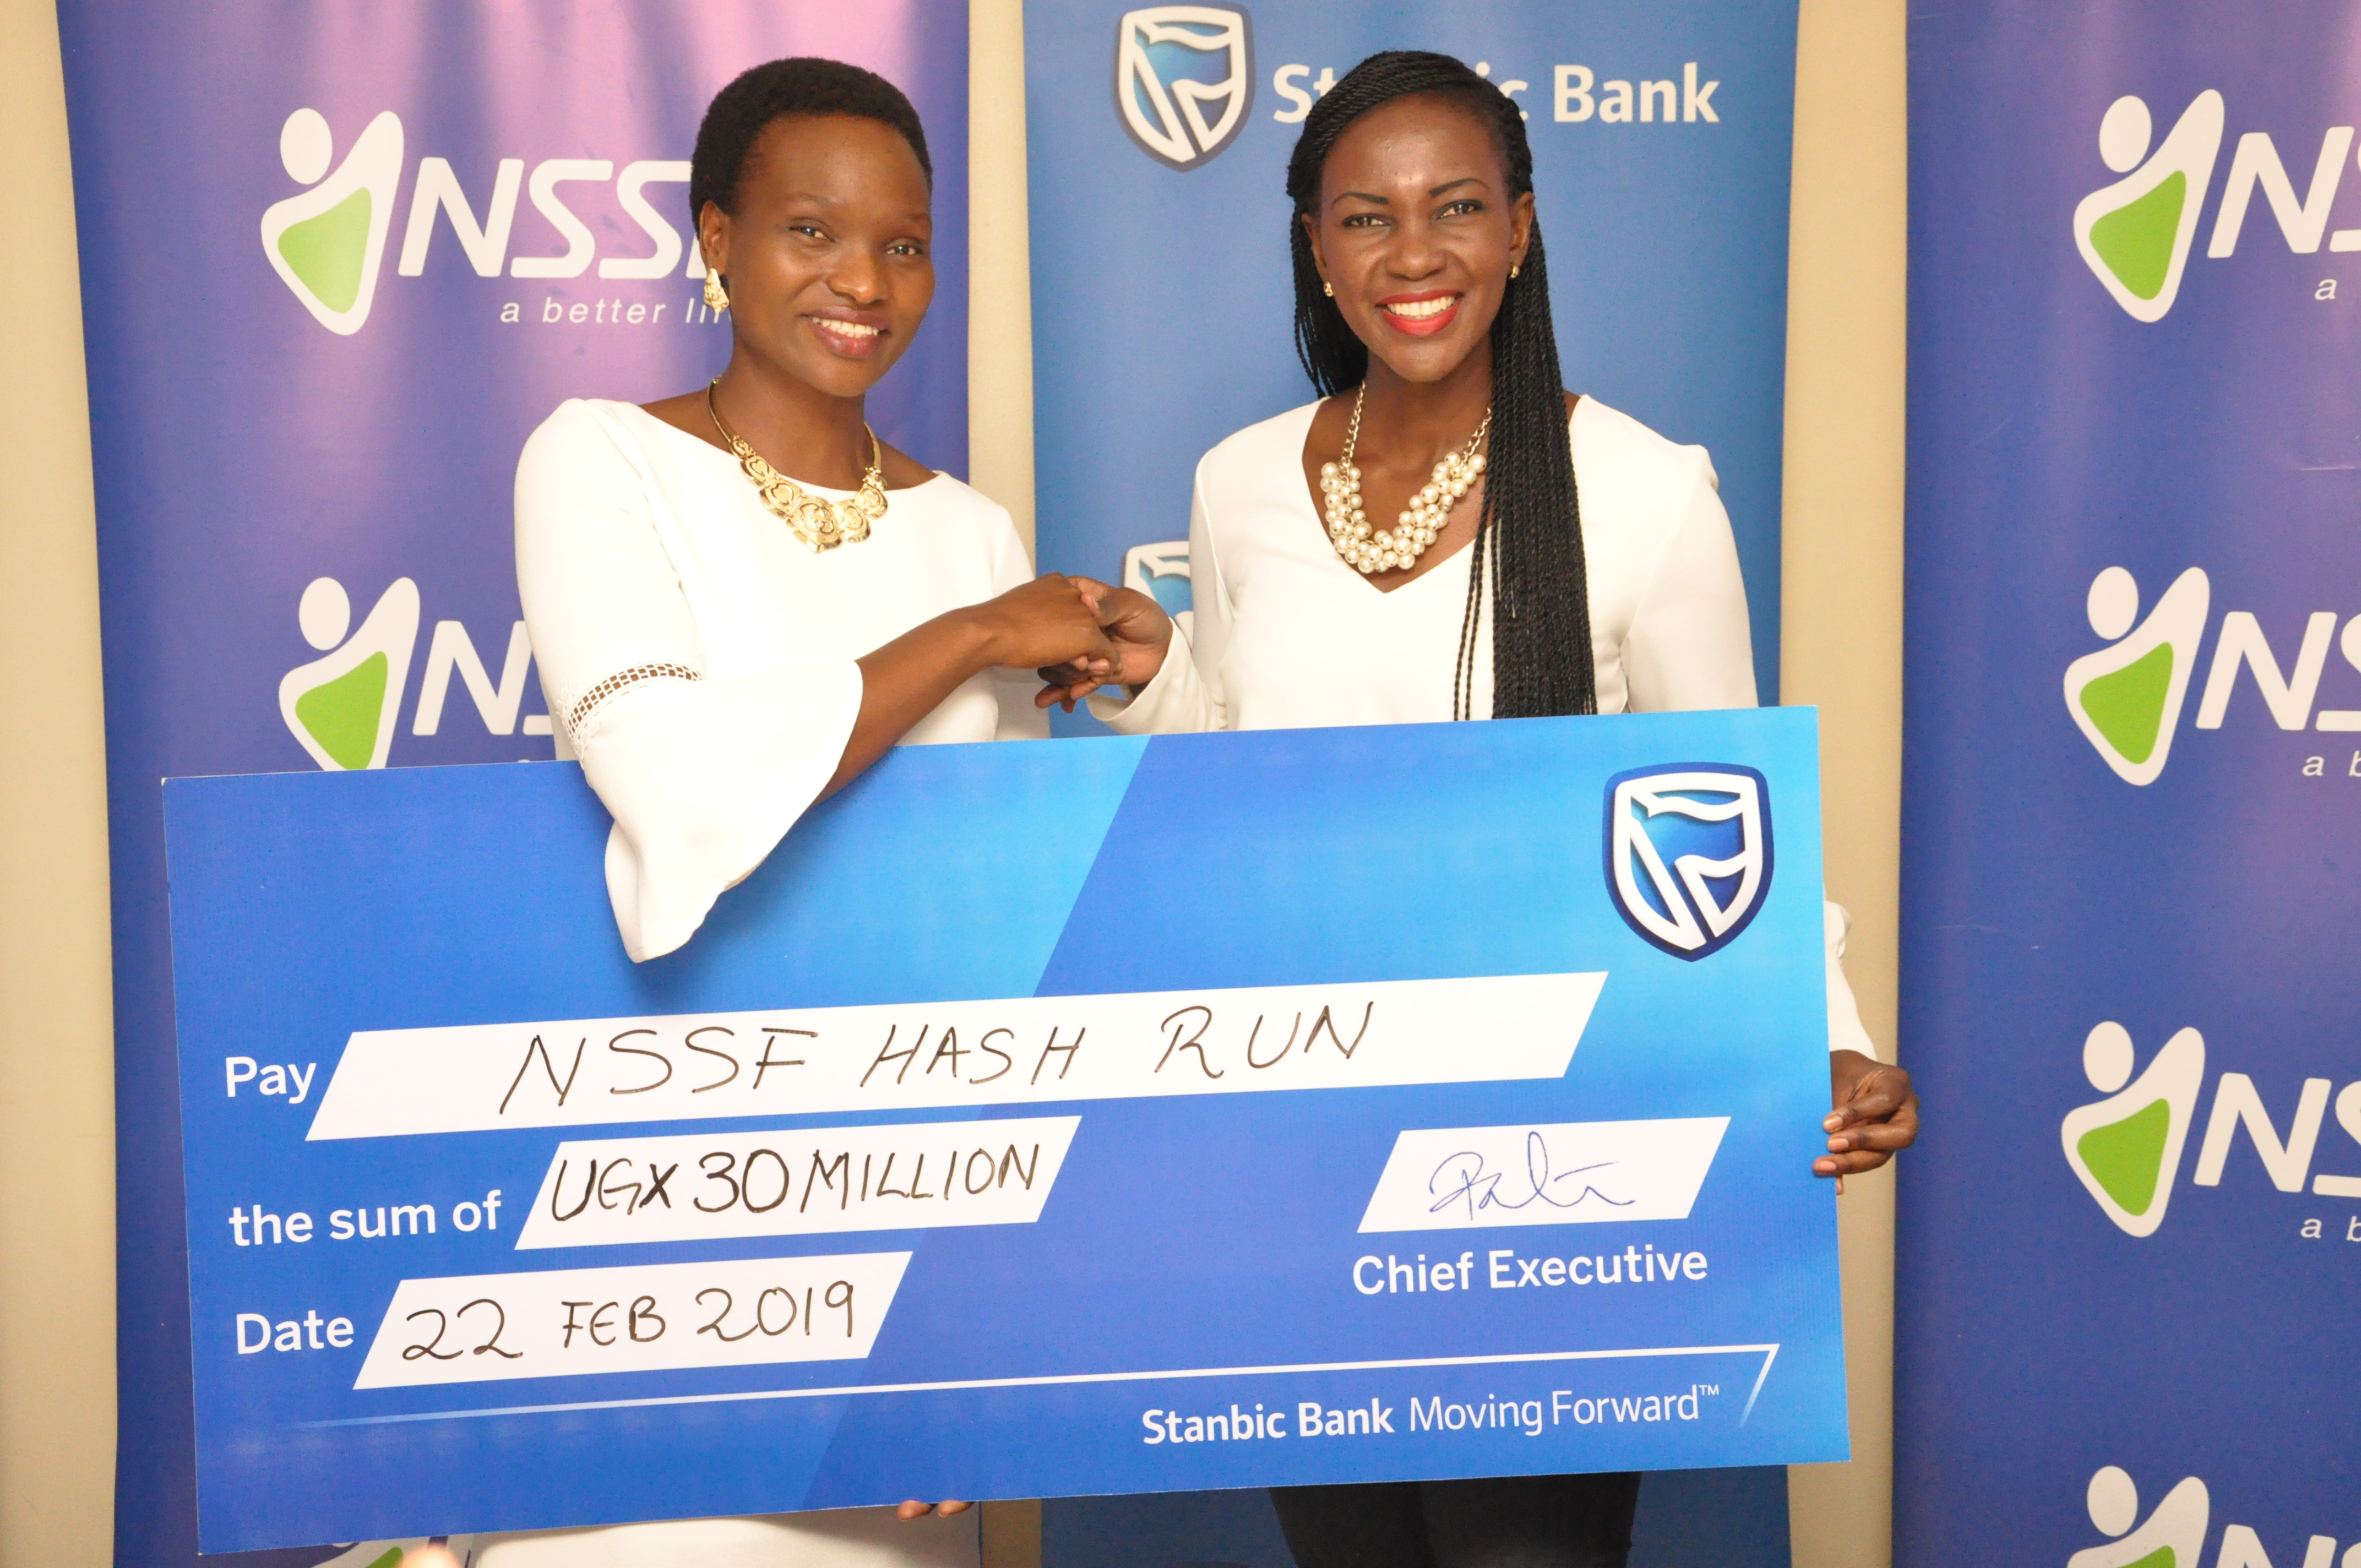 Photo of Stanbic Bank Doubles Contribution Towards NSSF Hash Run